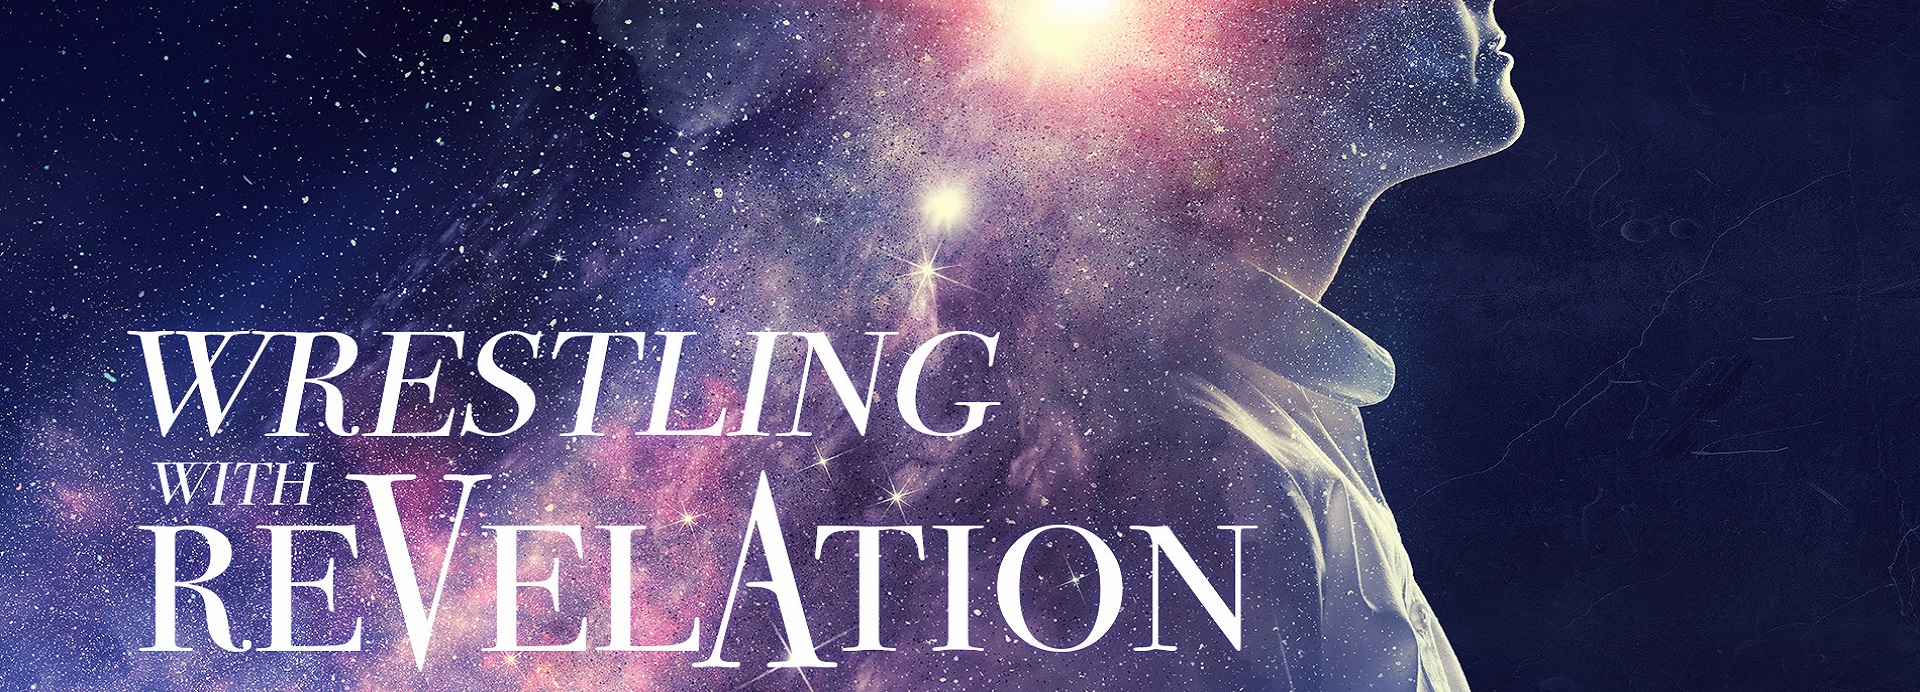 Wrestling with Revelation App Banner